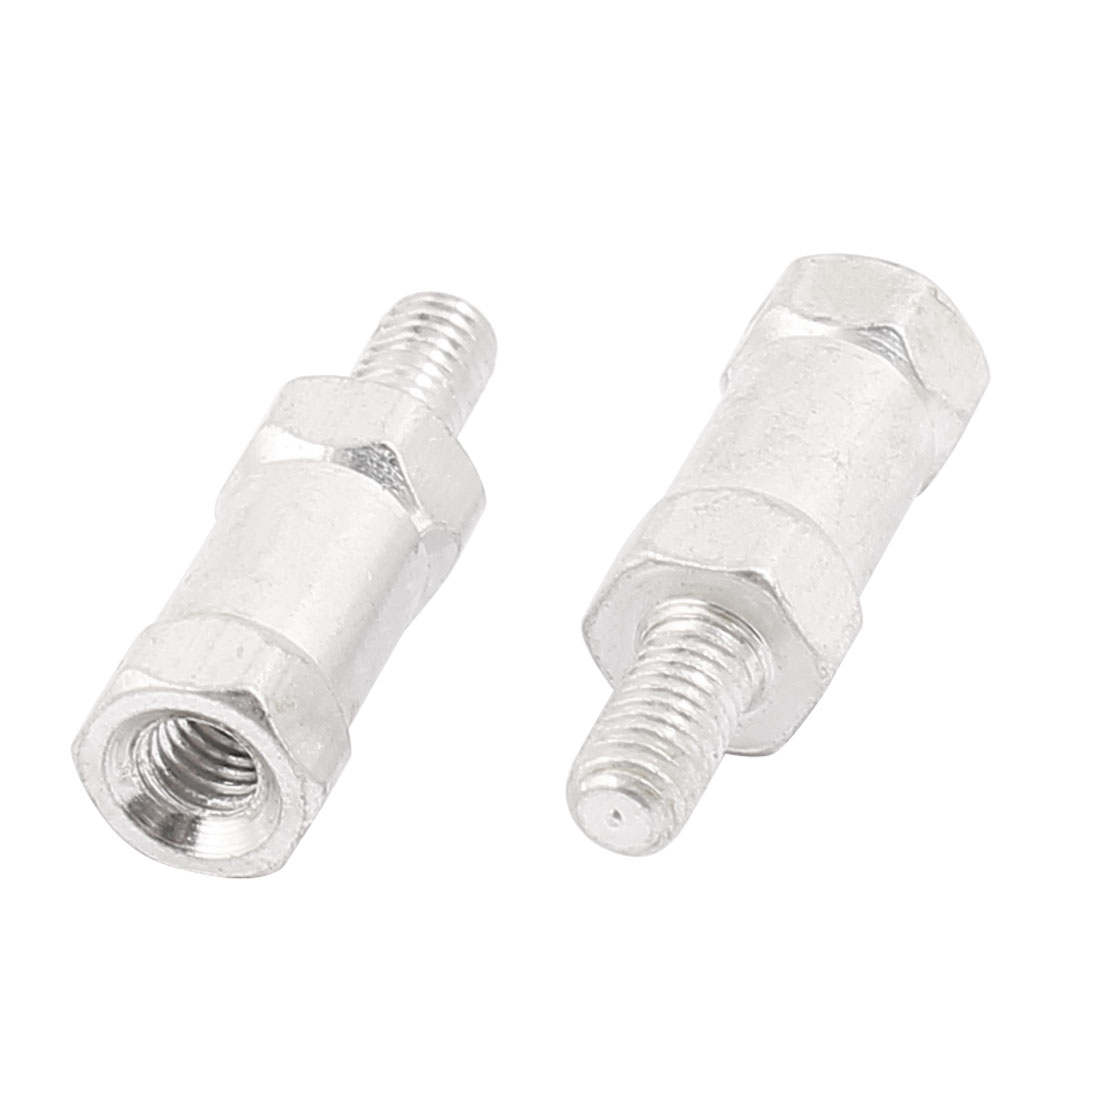 2 Pcs M3 Aluminum Alloy Male to Female Hexagonal Standoff 5.5 X 12 mm